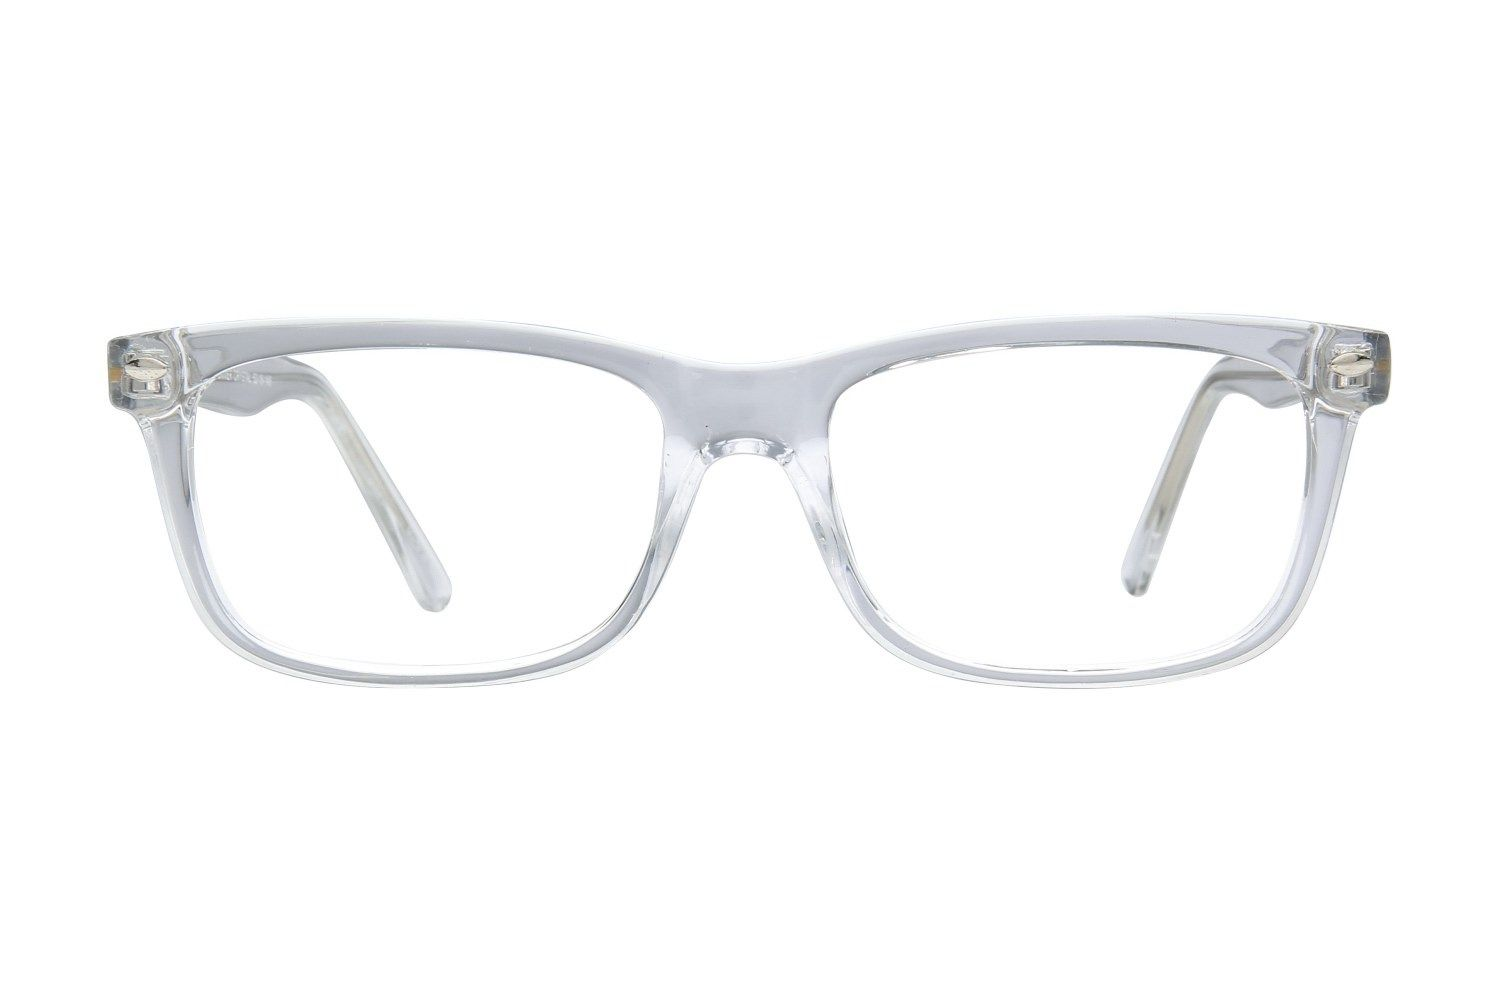 Cheap Glasses Lunettos Dylan Eyeglasses In 2019 Products Glasses Frames